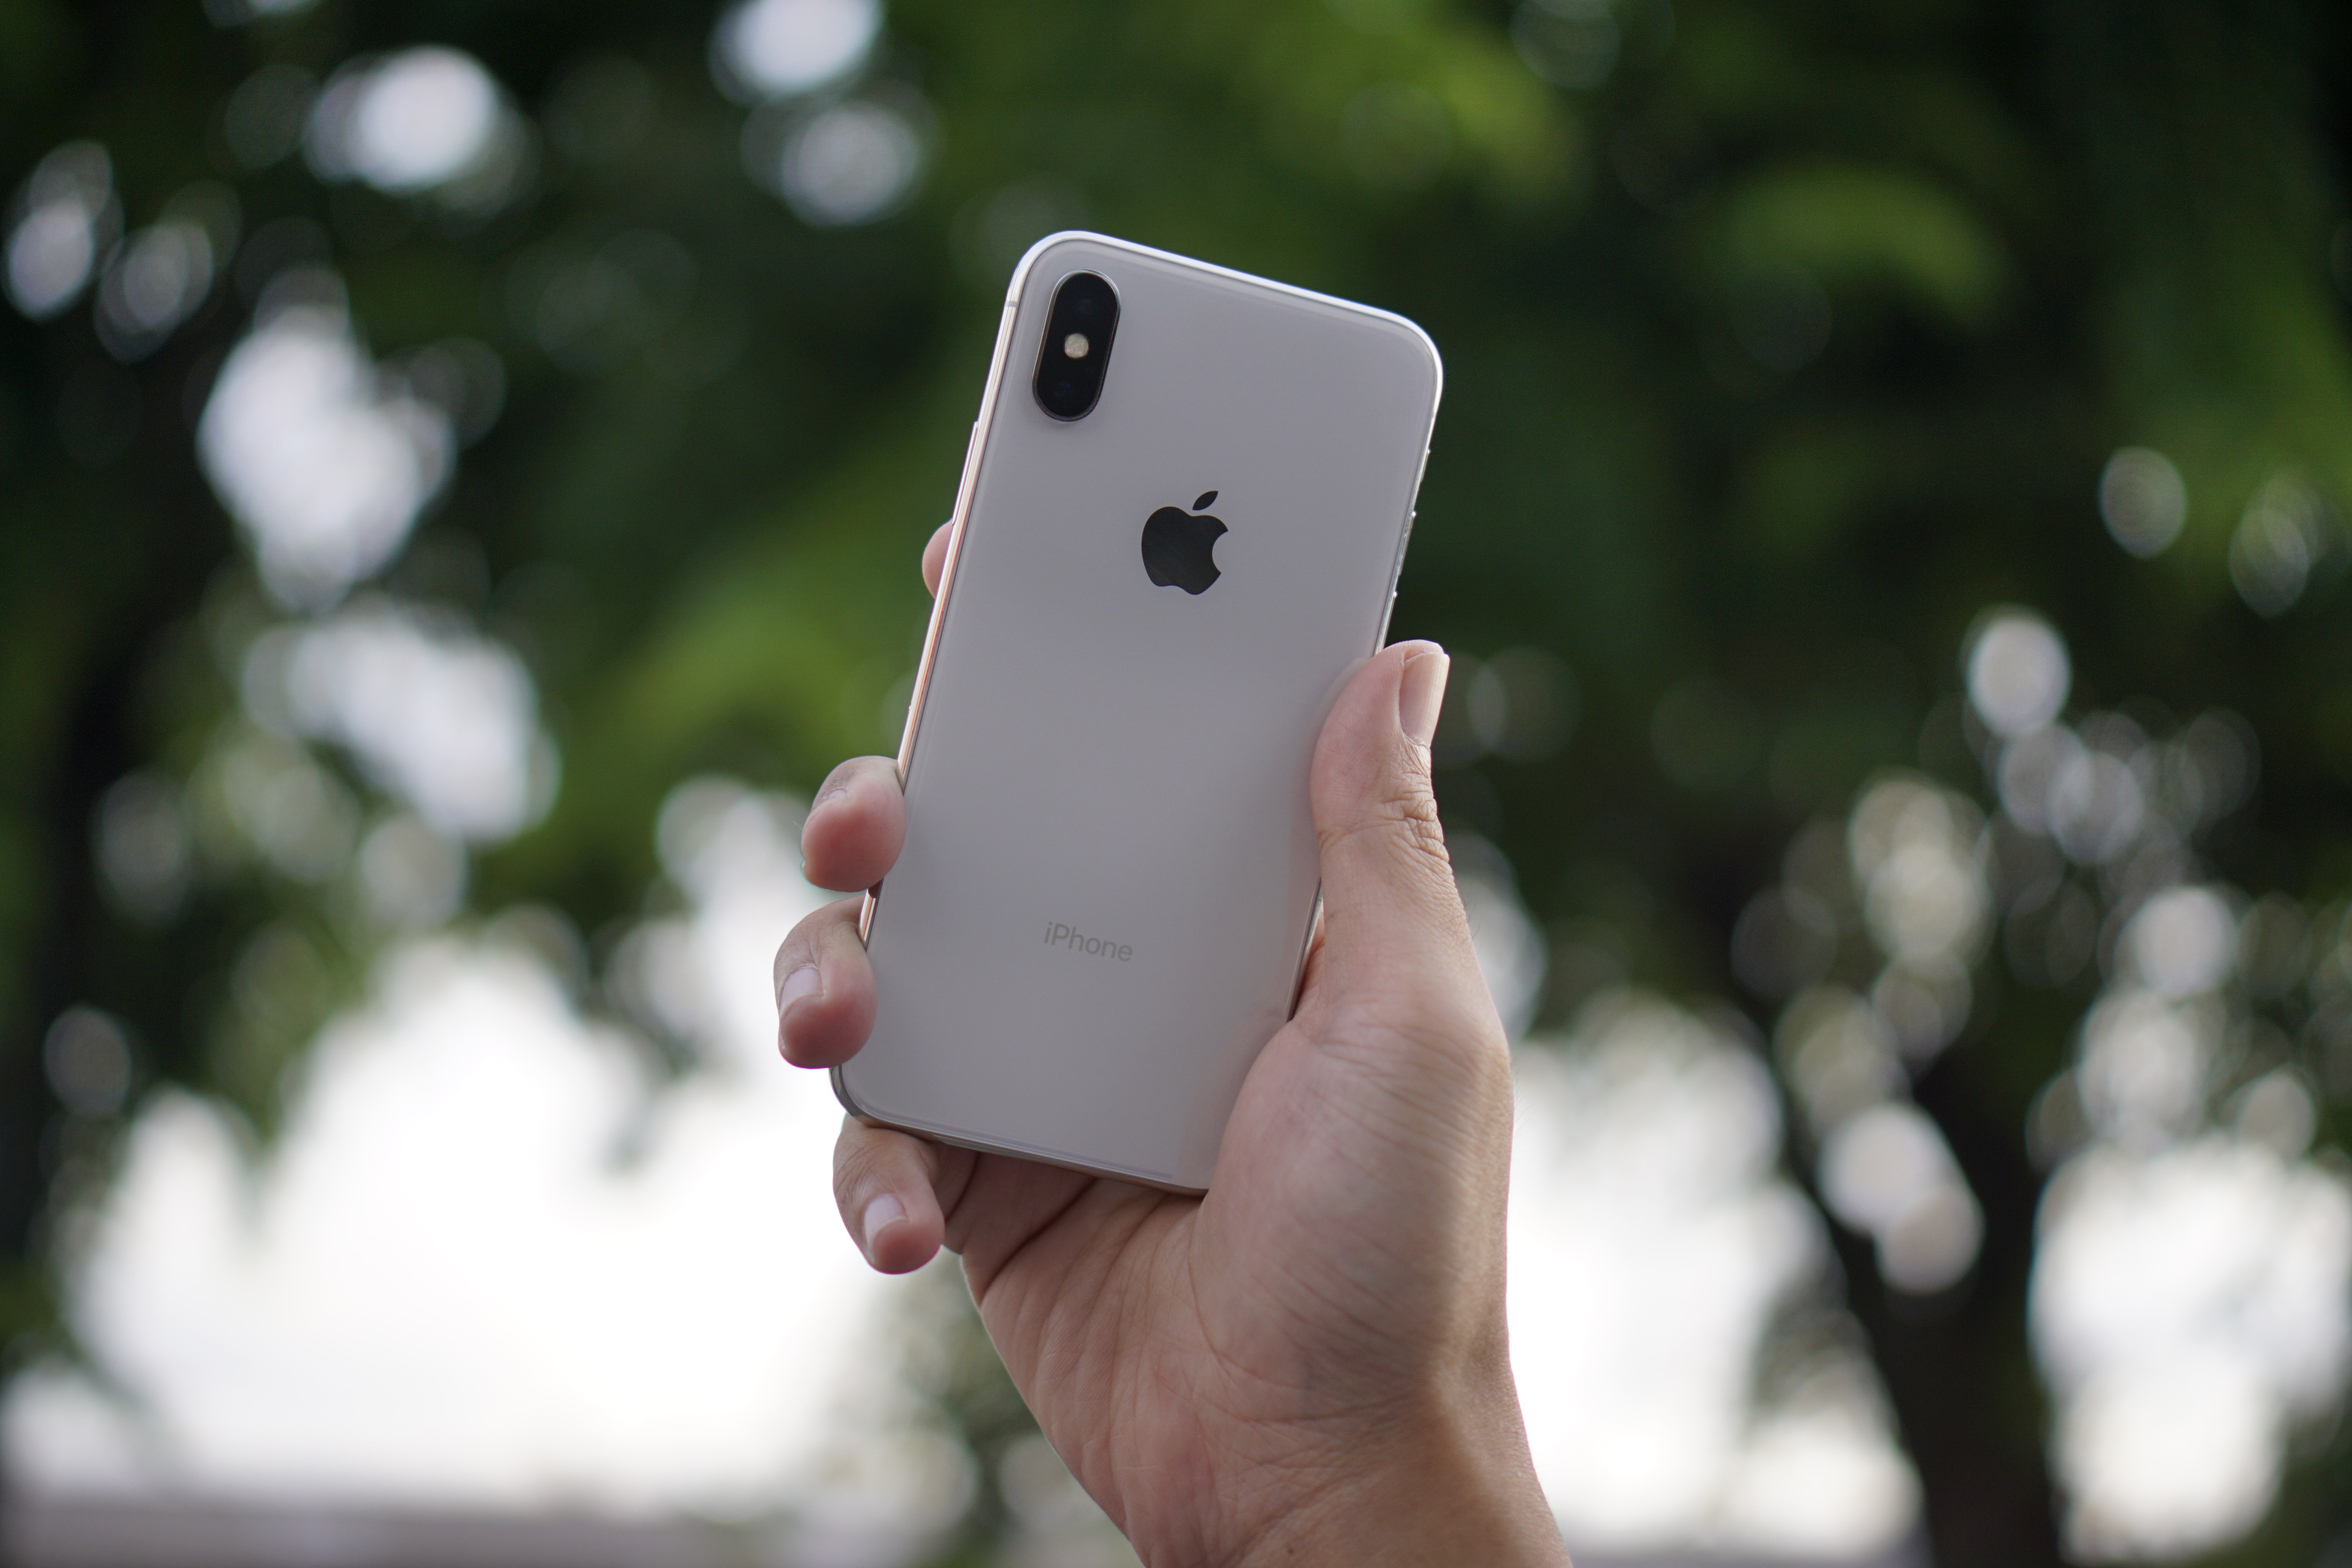 person holding silver iPhone X during daytime